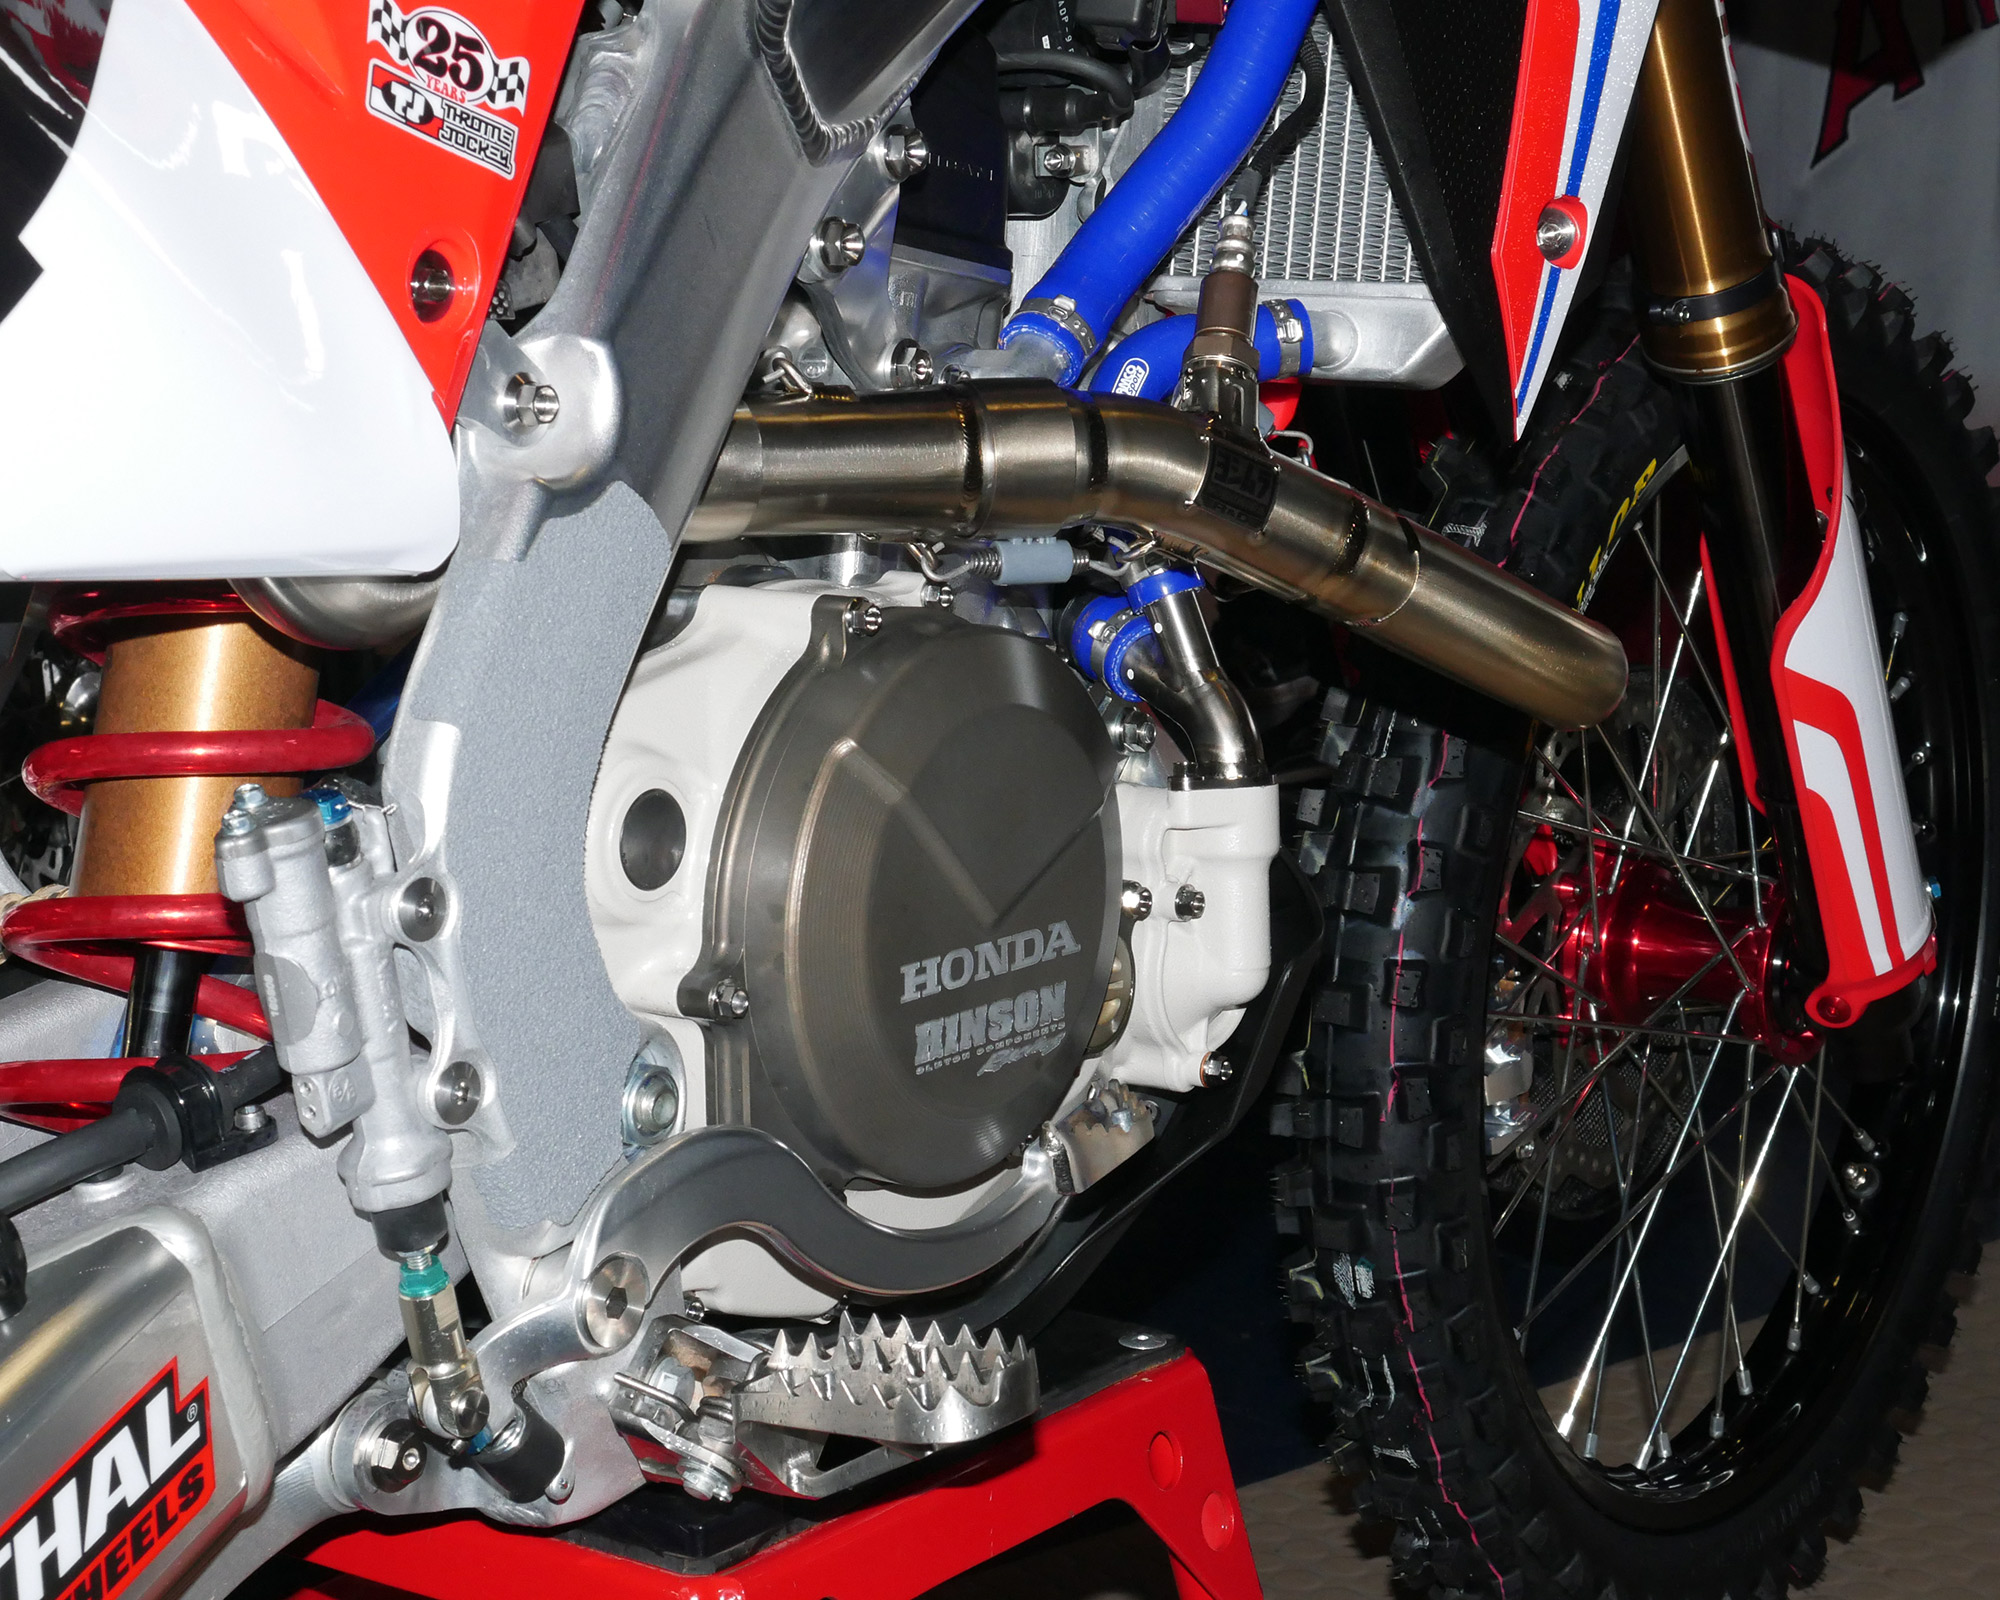 roczen-bike-right-2010517.jpg